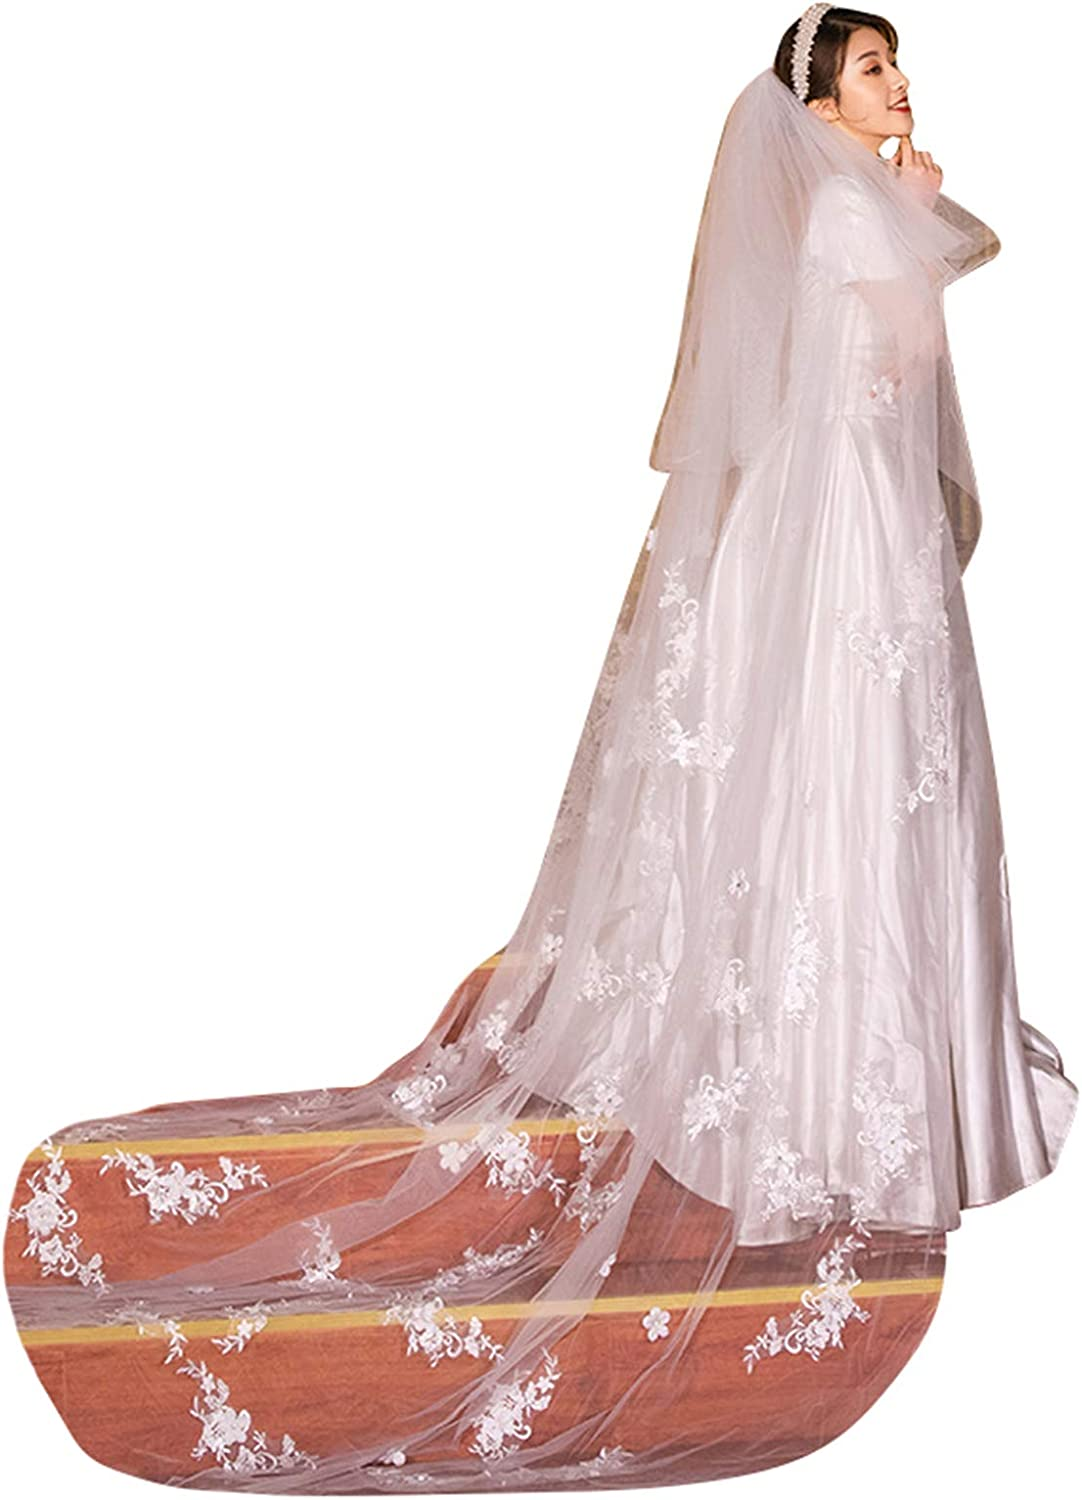 Wedding Veils Cathedral Length for Brides 2 Tier Floral Lace Appliques Blusher with Comb